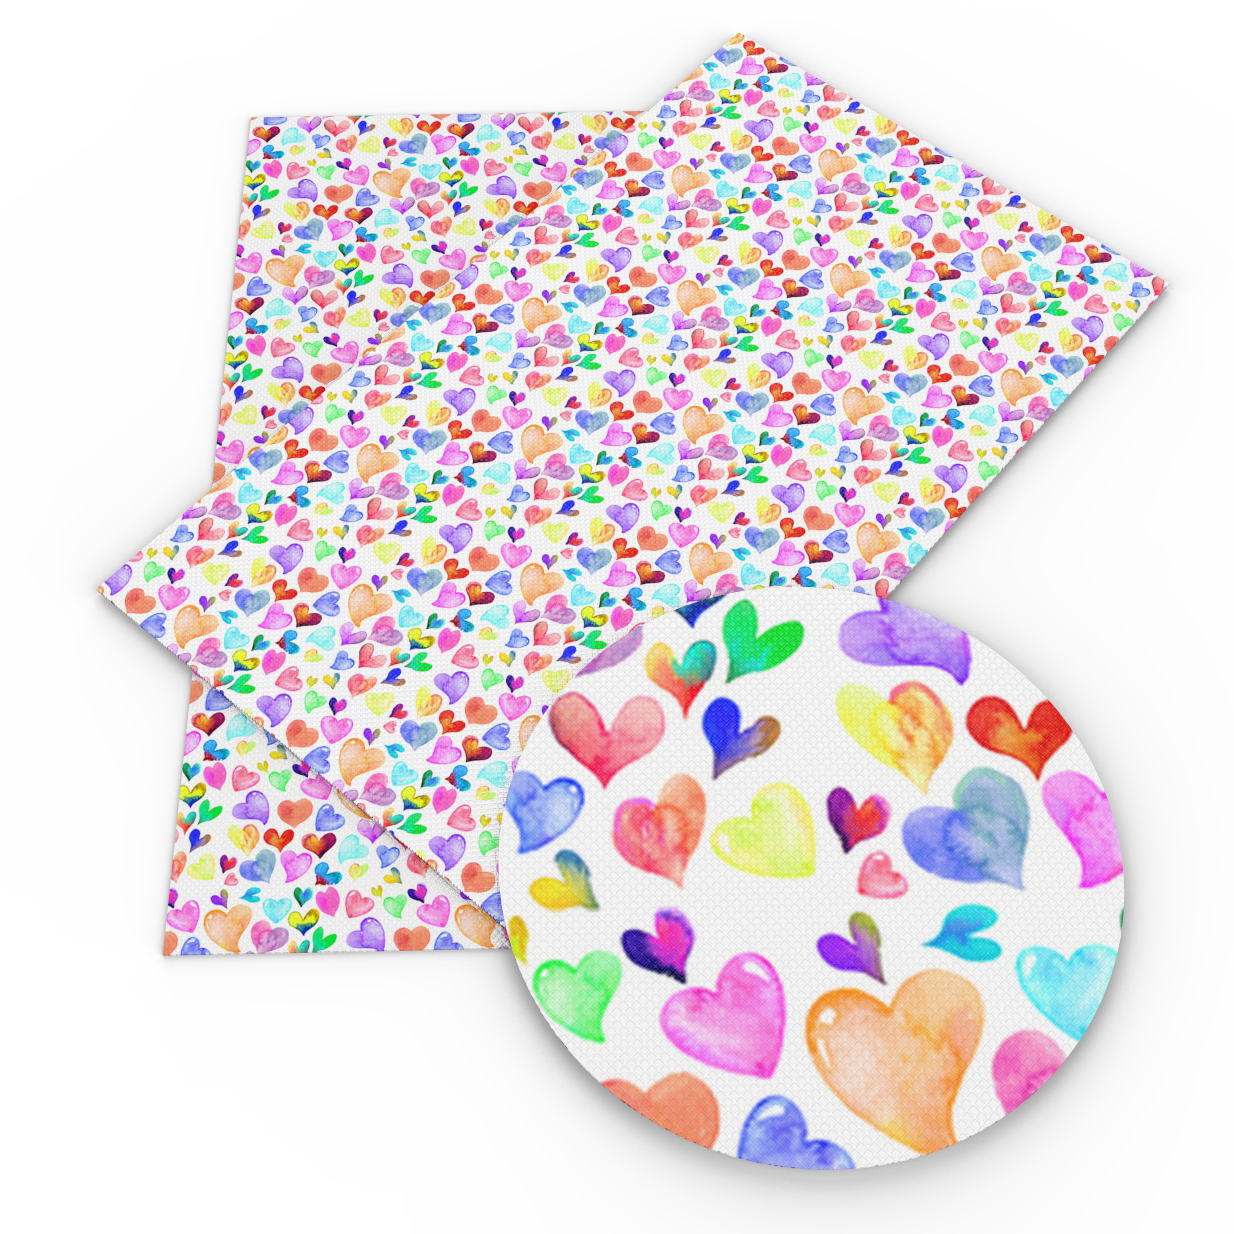 Arts,crafts & Sewing David Accessories 20*34cm Valentines Day Printed Synthetic Leather Patchwork For Hair Bow Bags Phone Cover Diy Projects,1yc5020 To Clear Out Annoyance And Quench Thirst